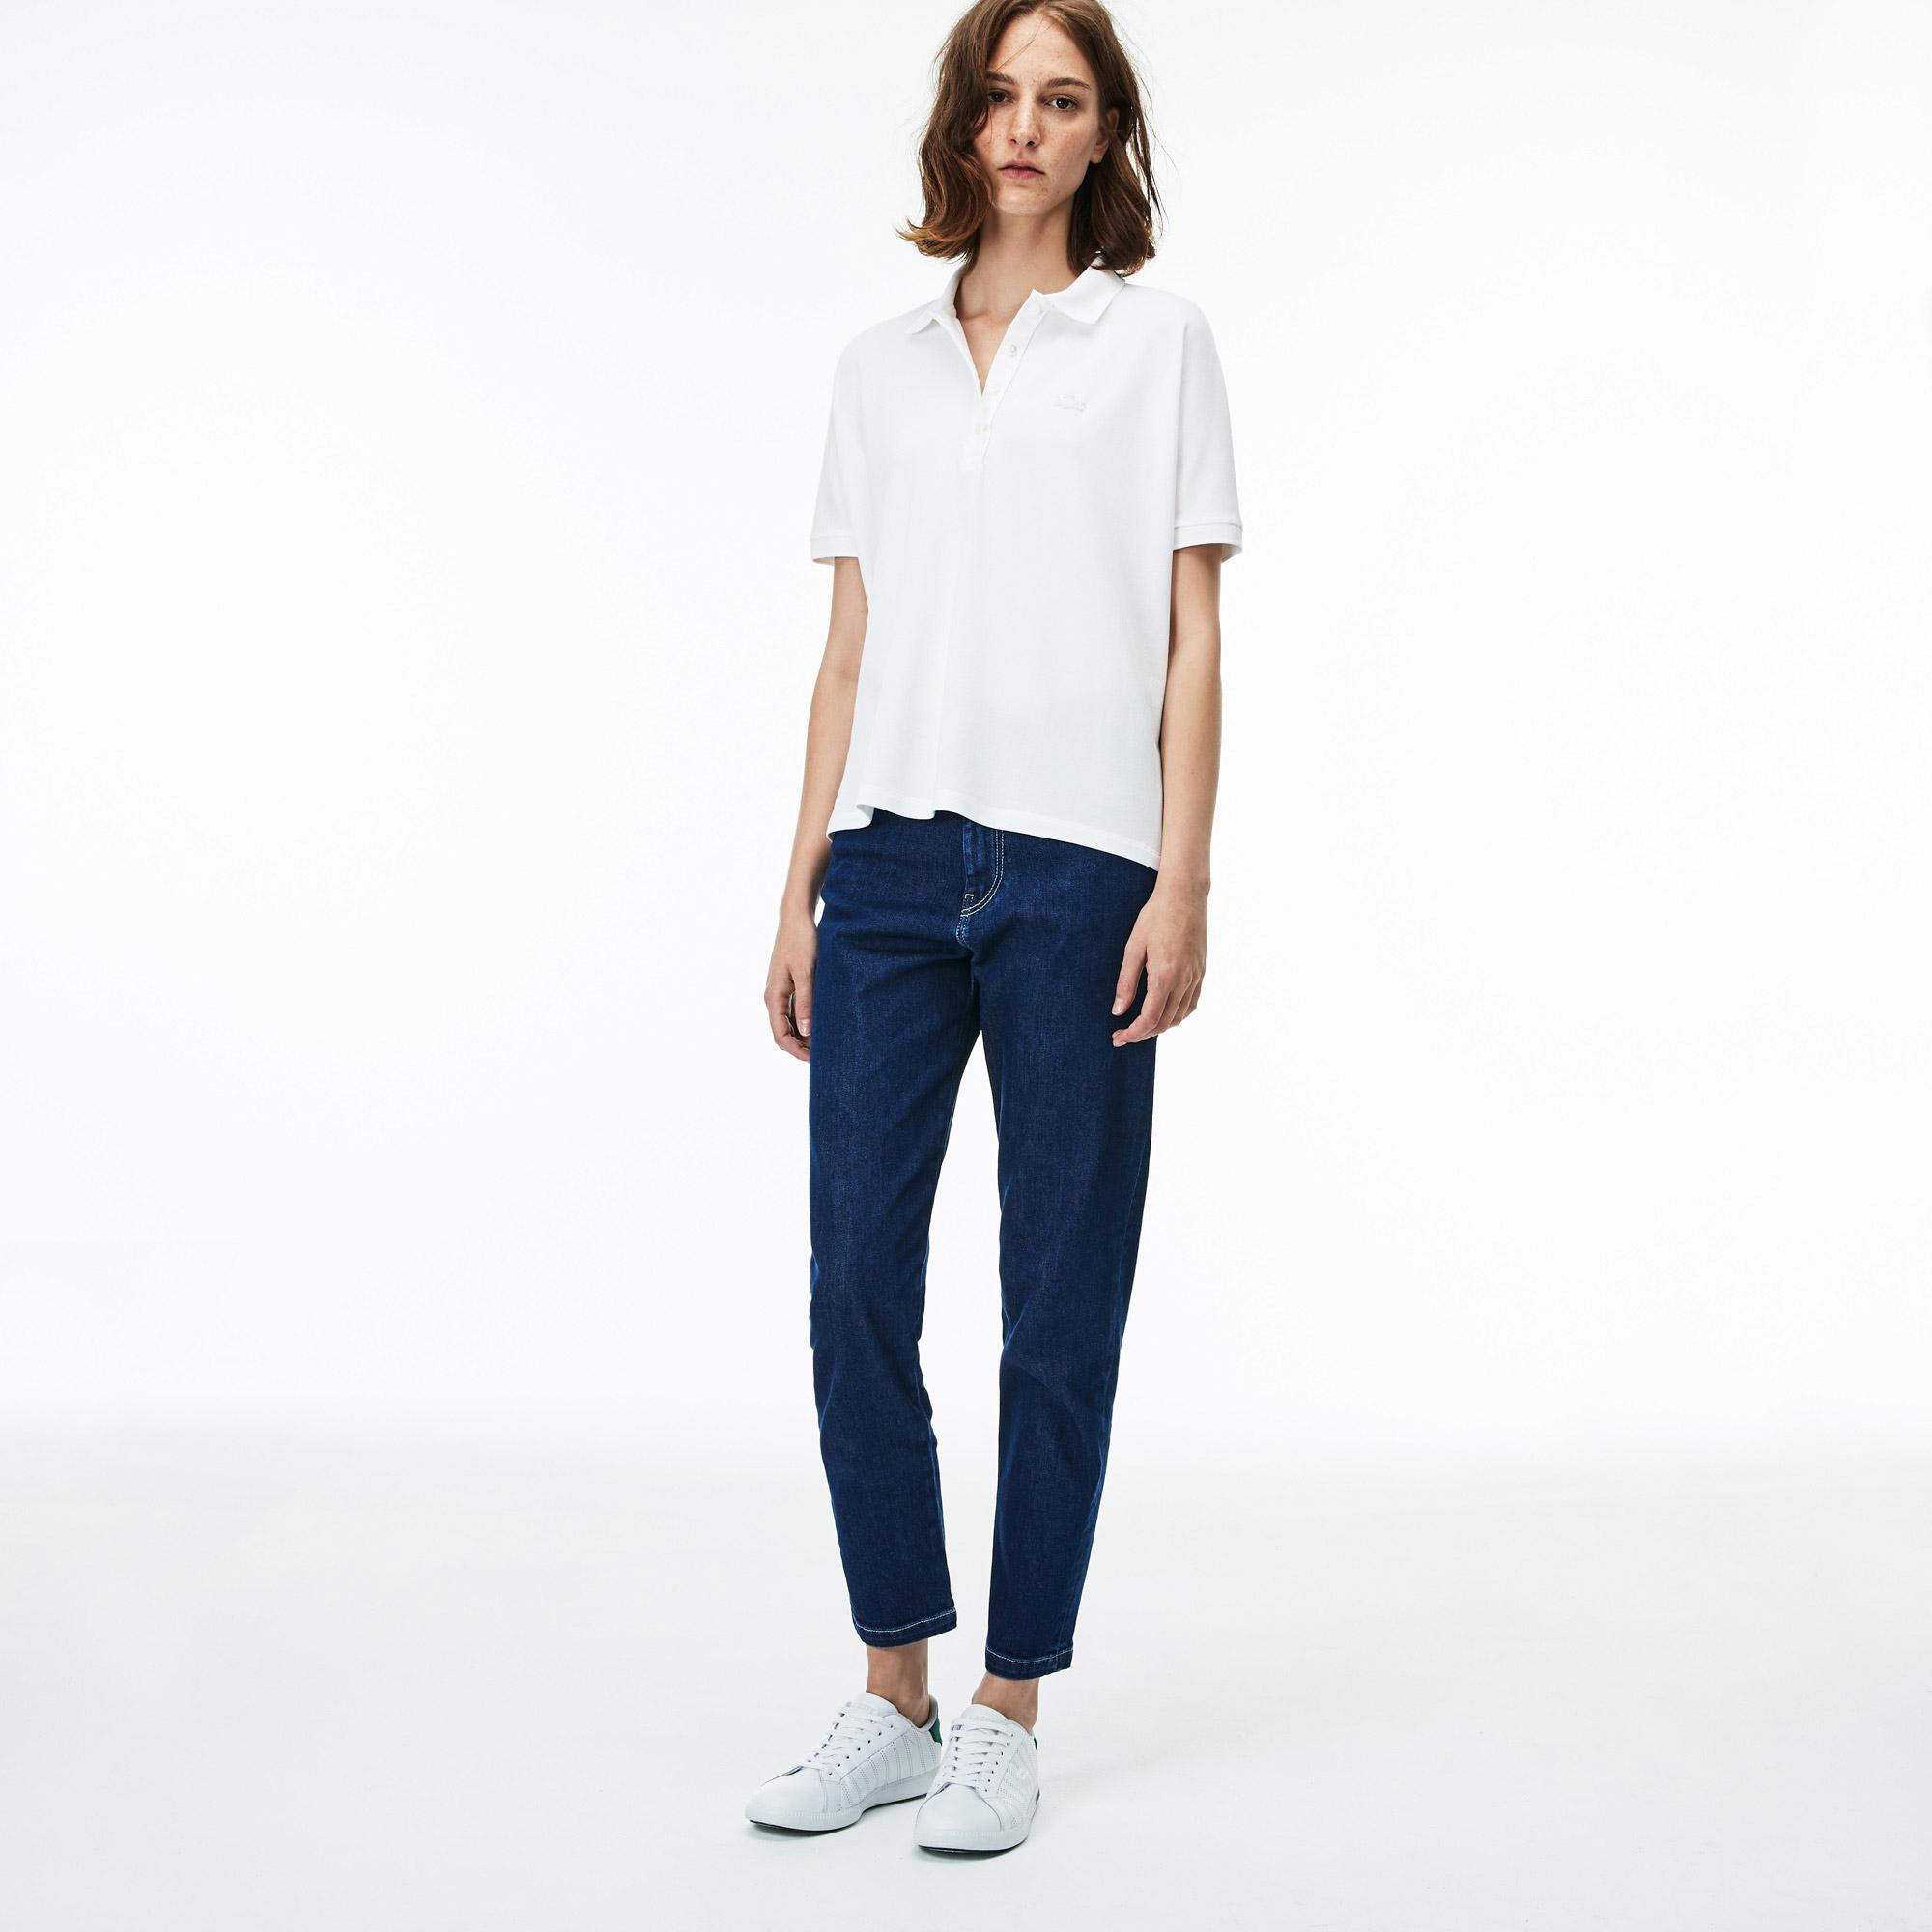 Lacoste Women's Relax Fit Flowing Stretch Cotton Piqué Soft Polo